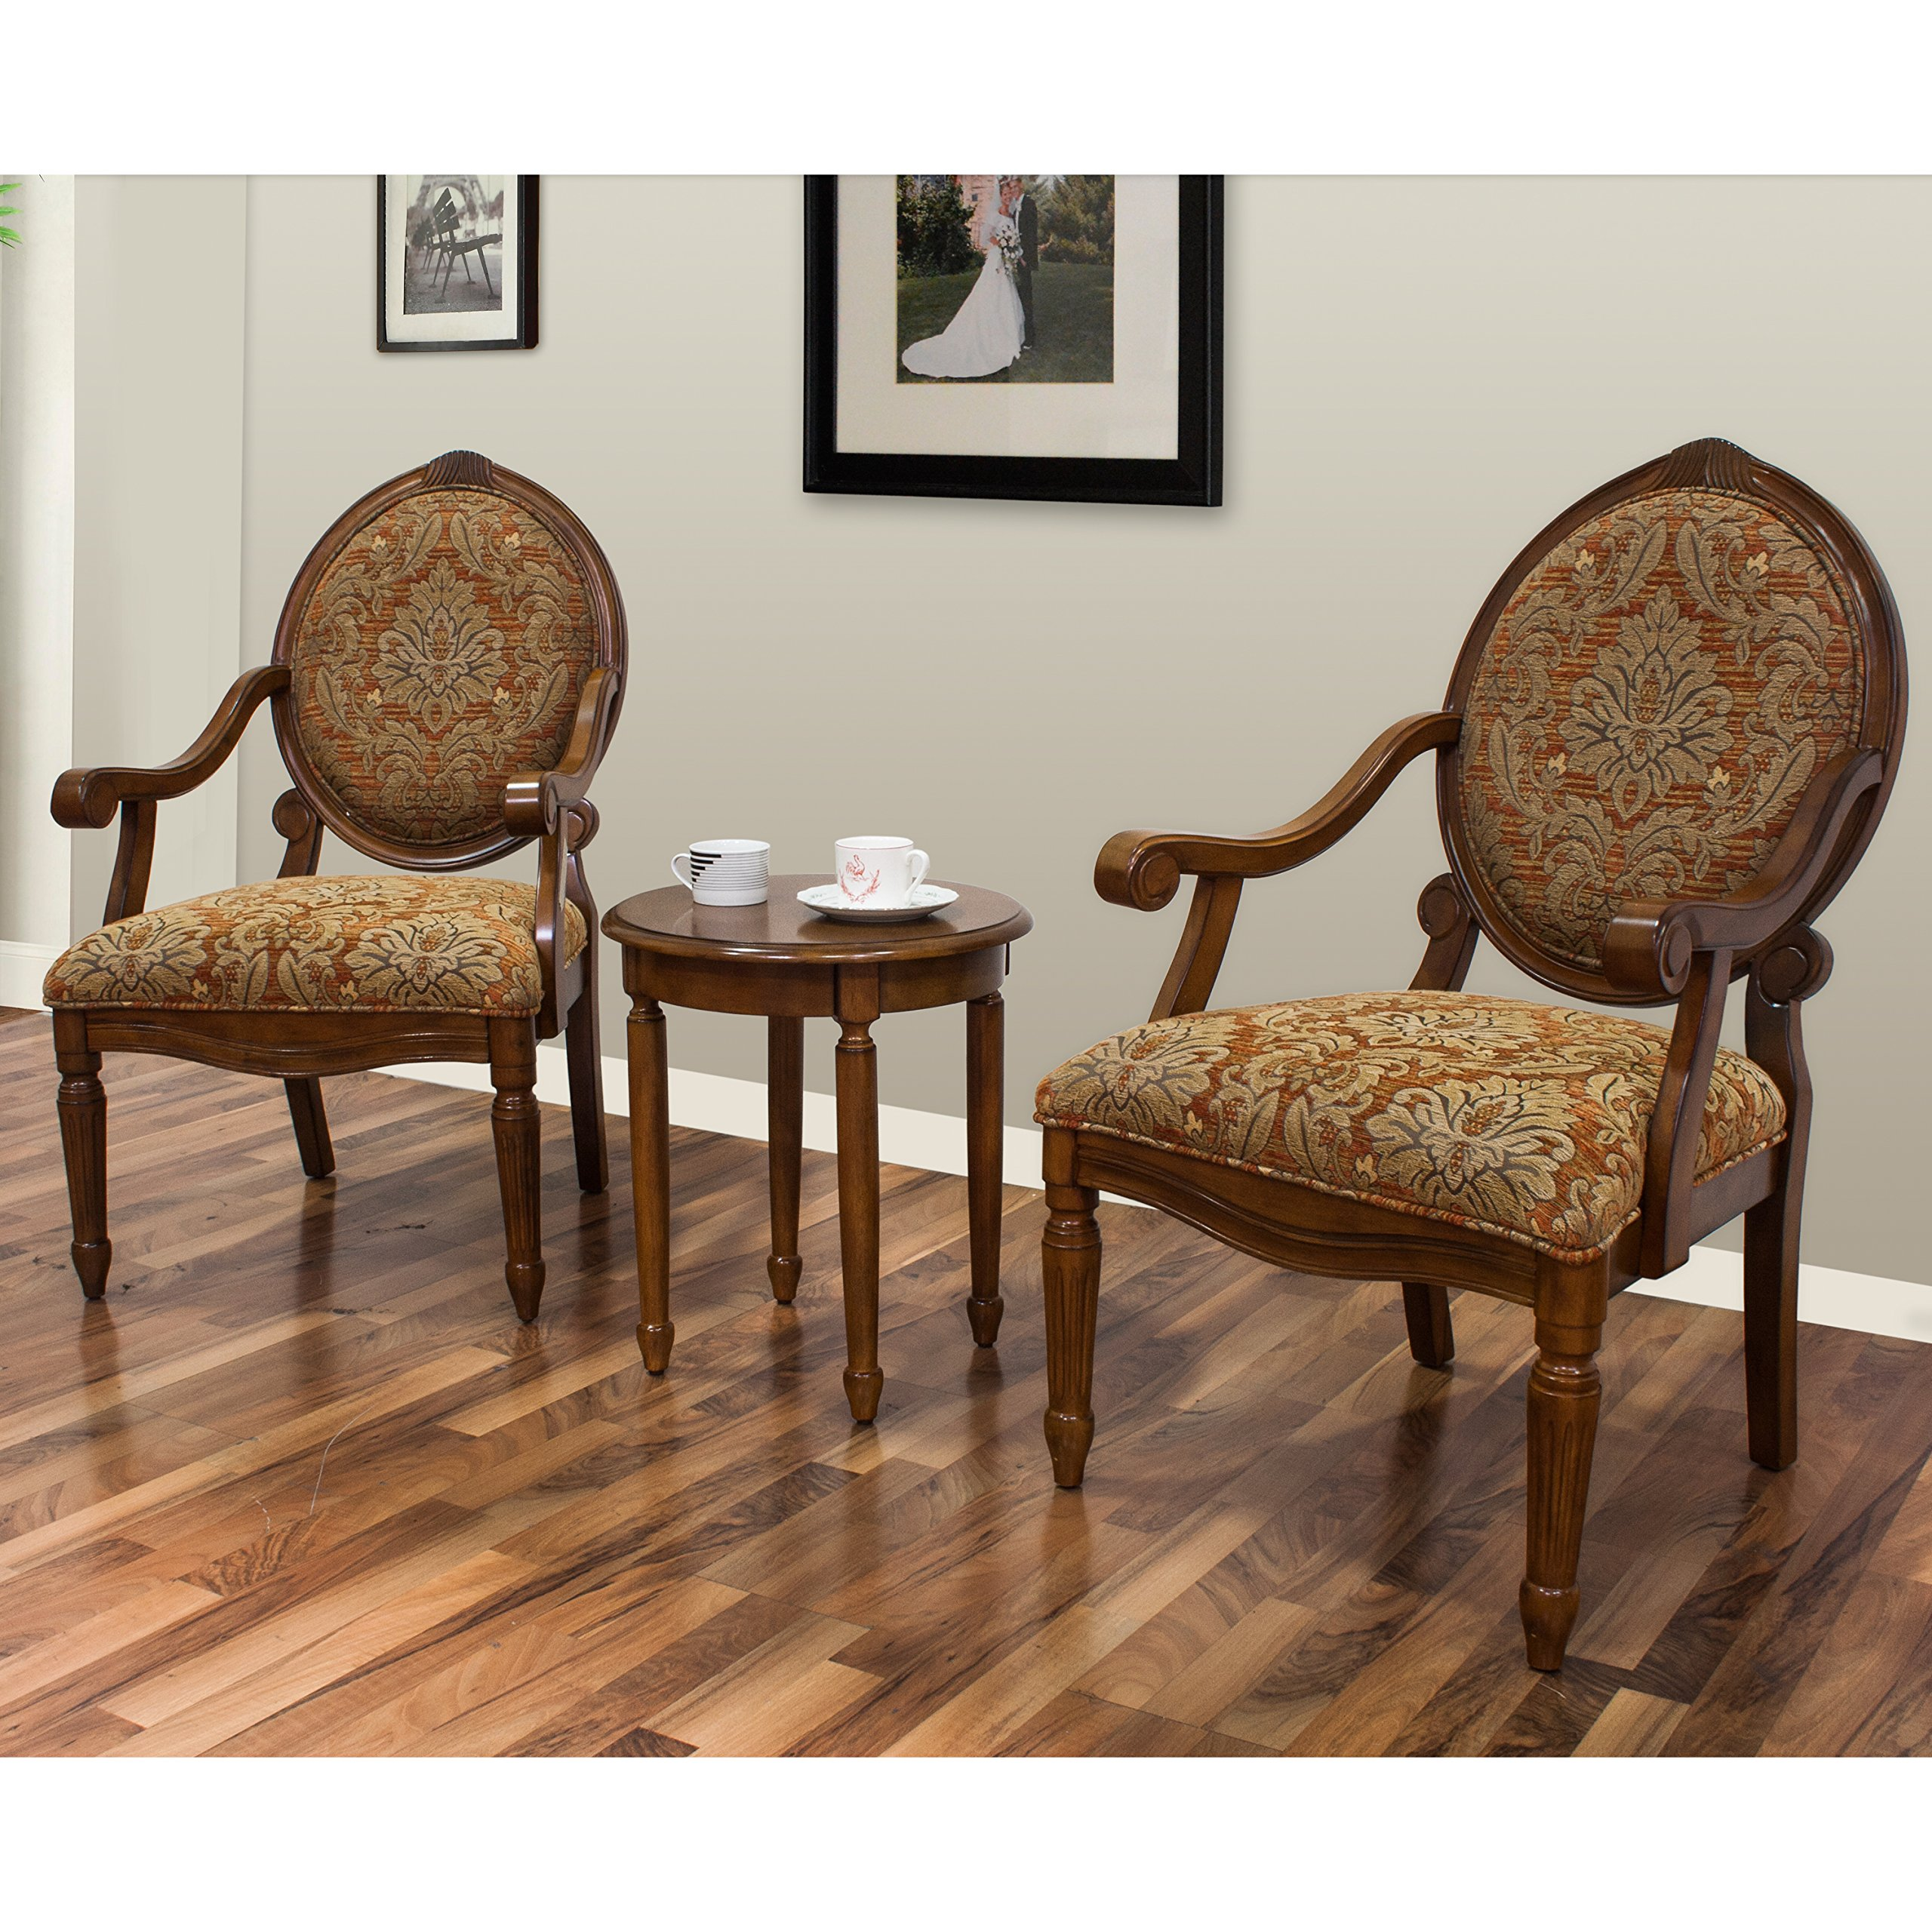 Best Master Furniture Miranda Traditional Living Room Accent Chair & Table Set, by Best Master Furniture